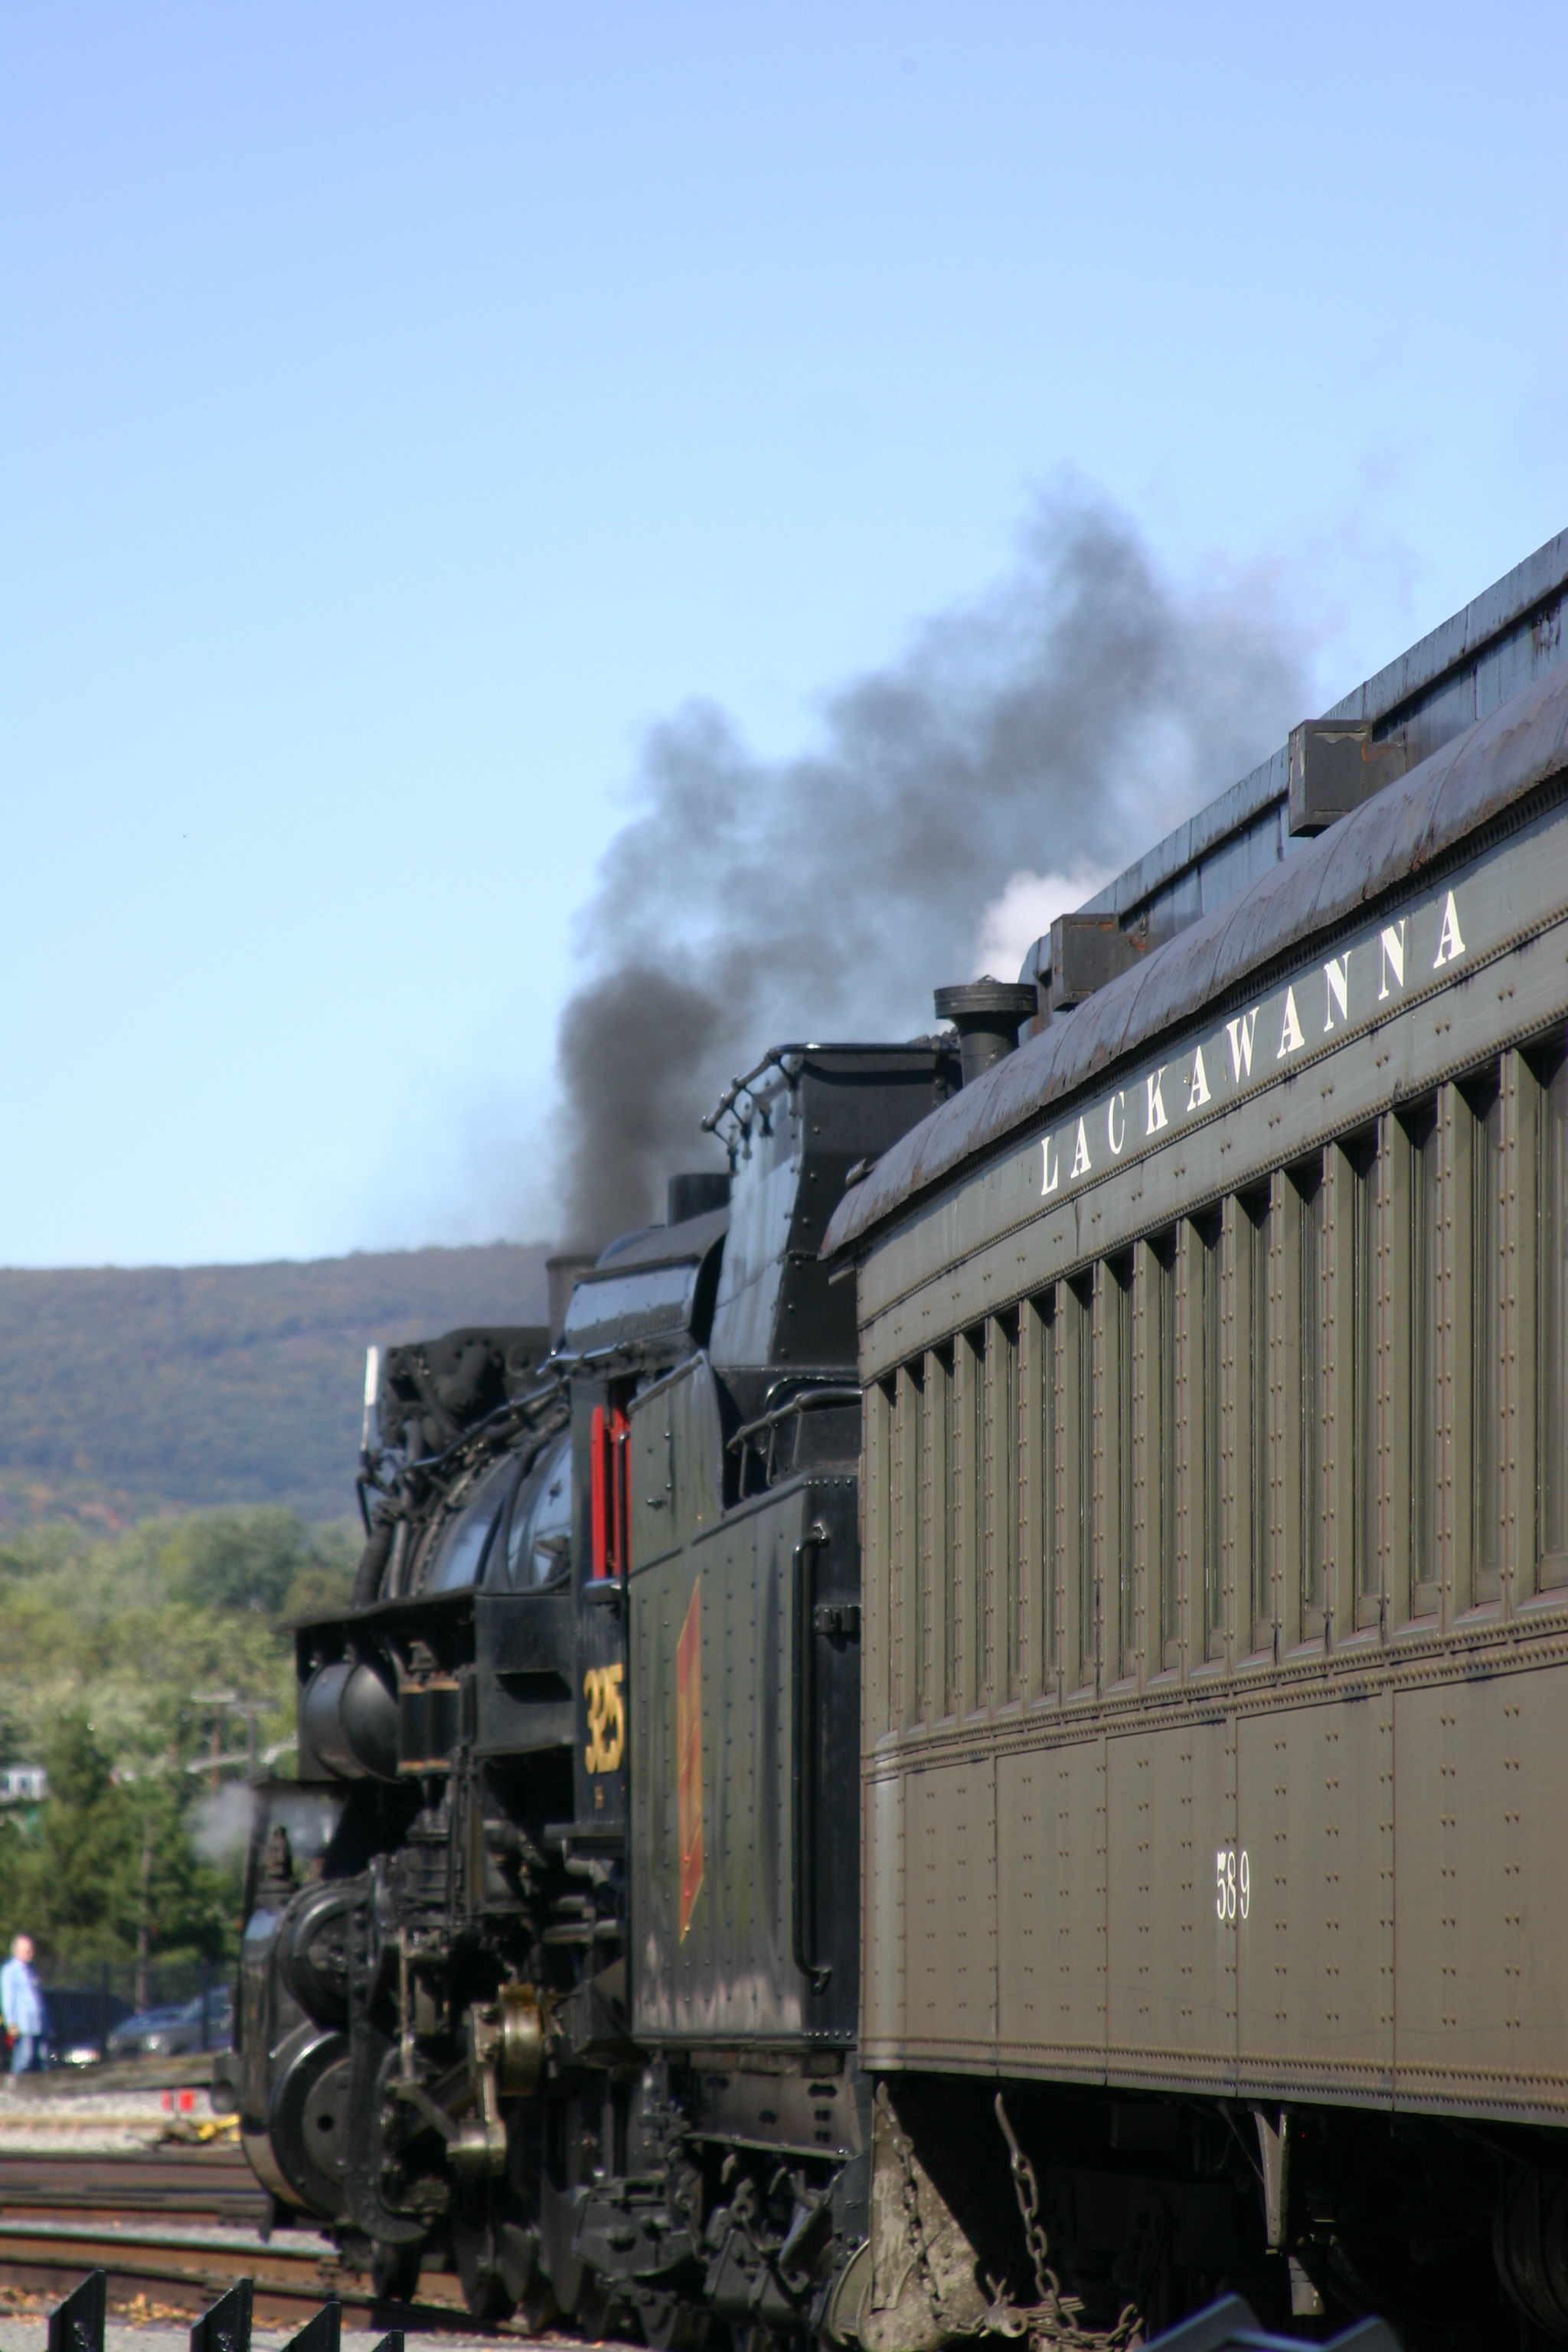 Excursion Train from Steamtown